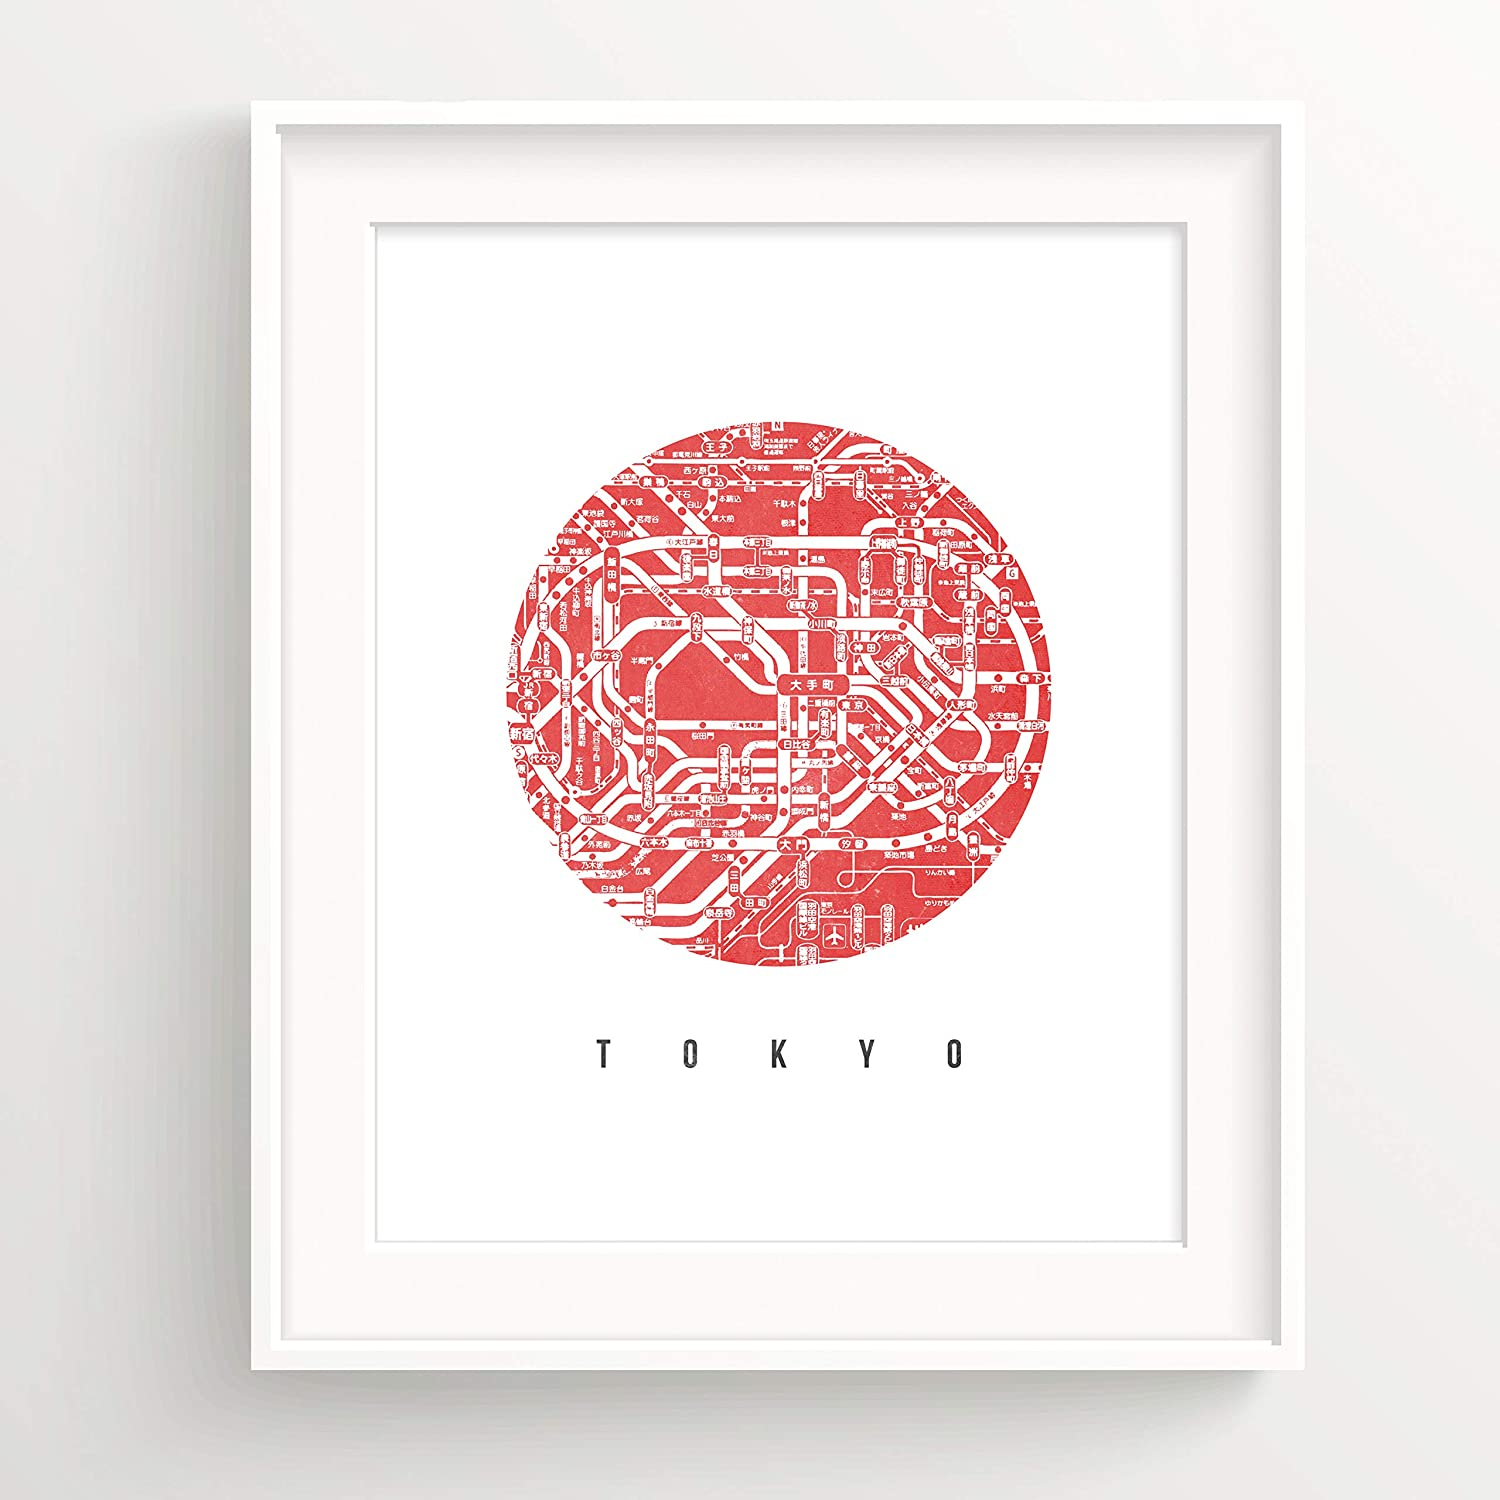 Urban Decal Tokyo City Map Print Modern Art Design Jpan Map Home Office Decor Poster - Red 11x14 Inches (NO Frame)